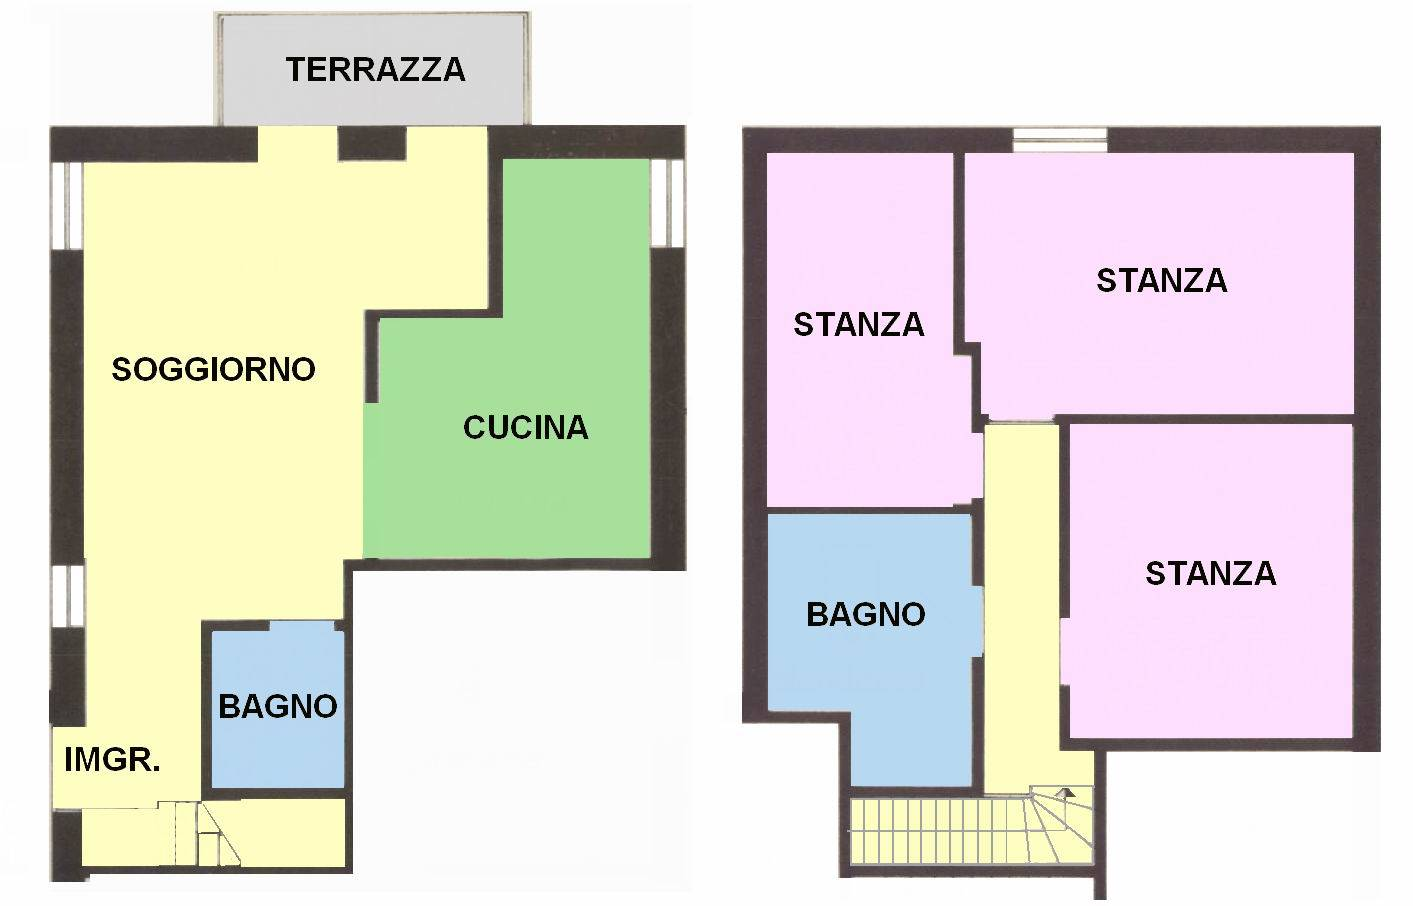 PERIFERIA, BOLZANO, Apartment for sale of 126 Sq. mt., Restored, Heating Individual heating system, Energetic class: G, placed at 1°, composed by: 4